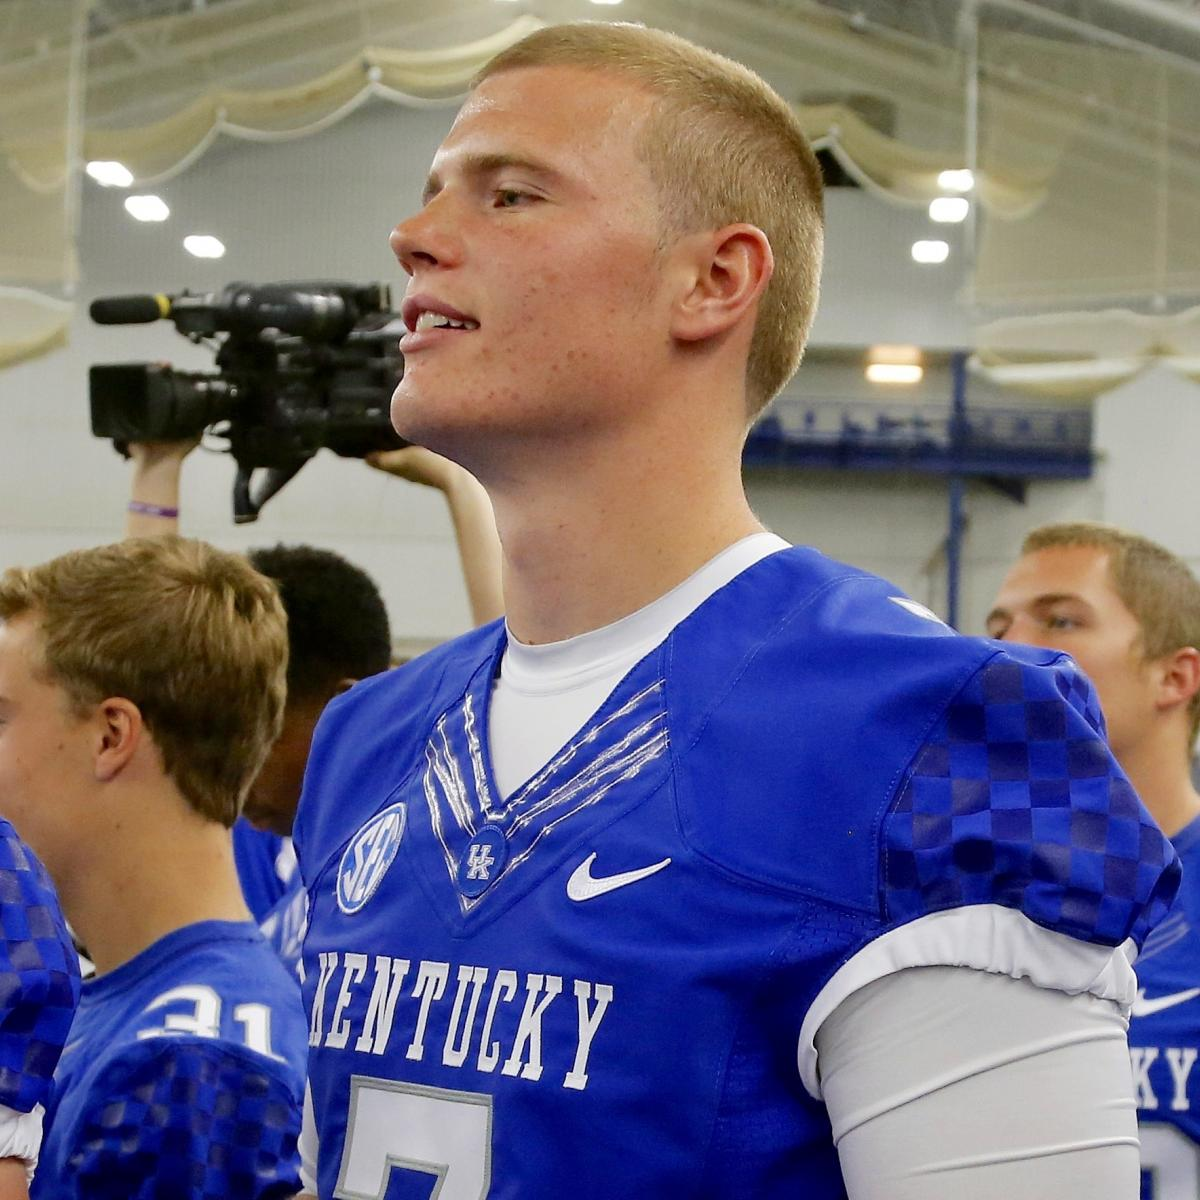 Kentucky QB Drew Barker Attacked on Video by EKU Player ...